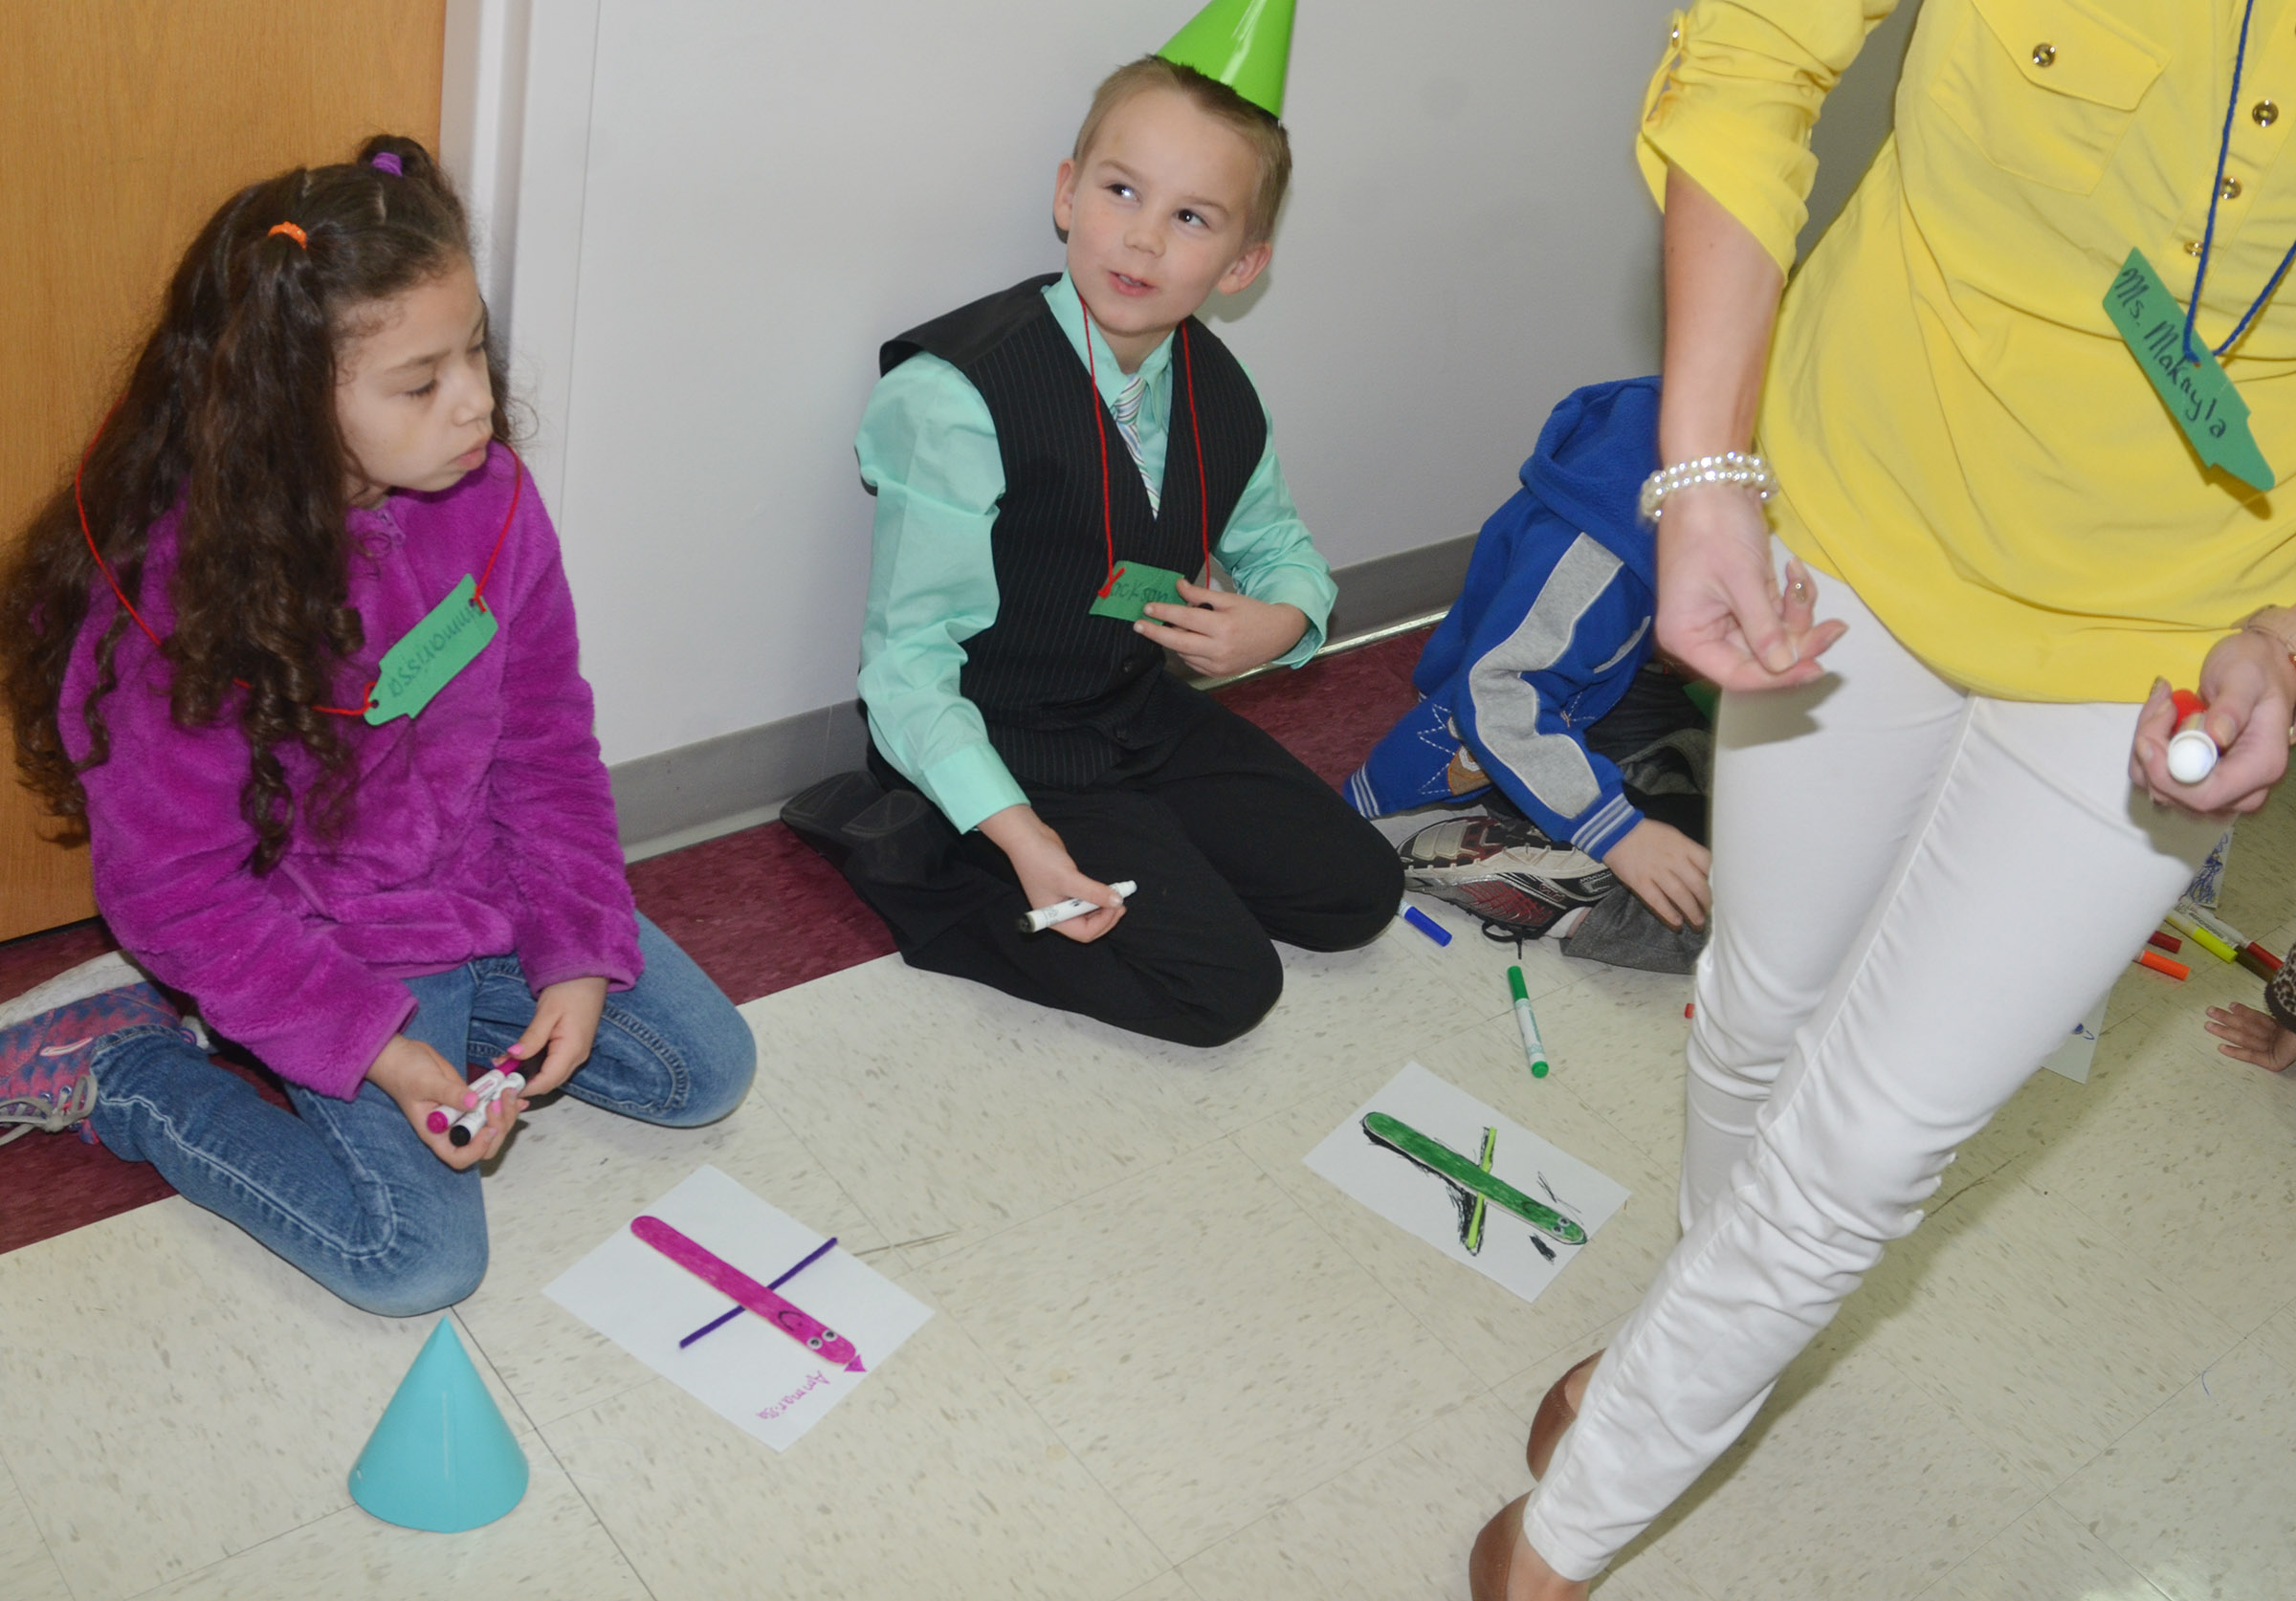 CES first-graders Ammarissa Nunez, at left, and Jackson Bates make their own crayon people.